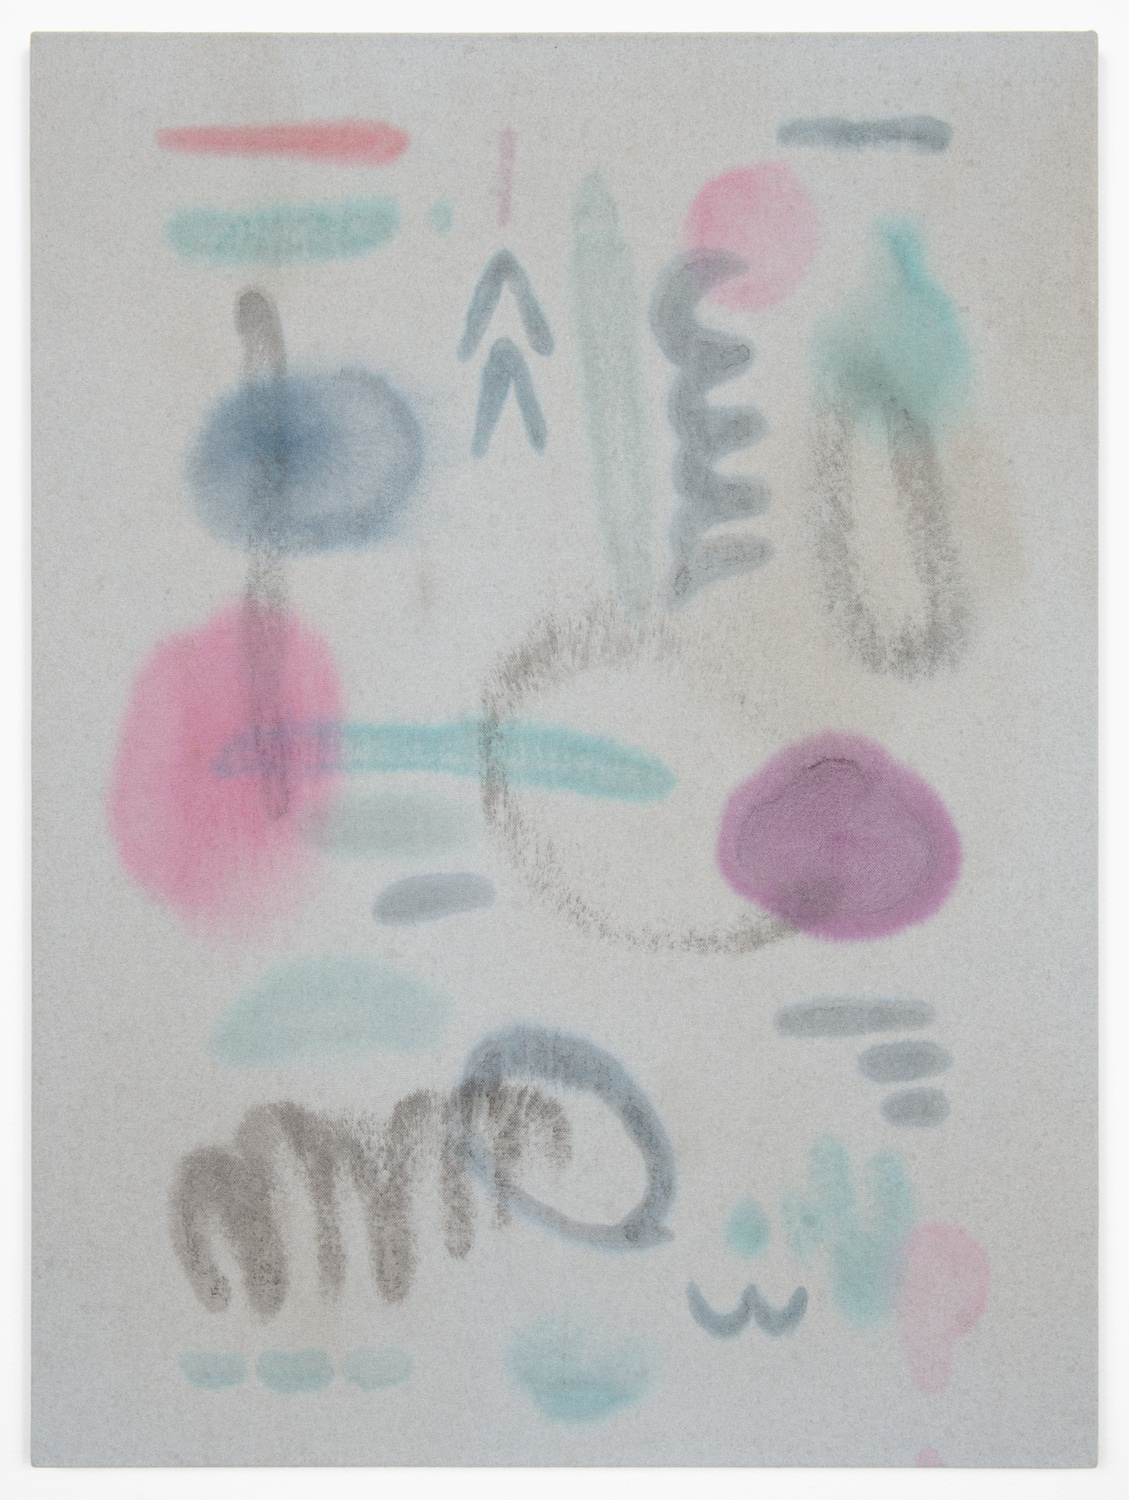 Amanda Ross-Ho  Untitled Painting (PARTY HARD)  2013 Acrylic on dyed canvas 24h x 18w in ARH050